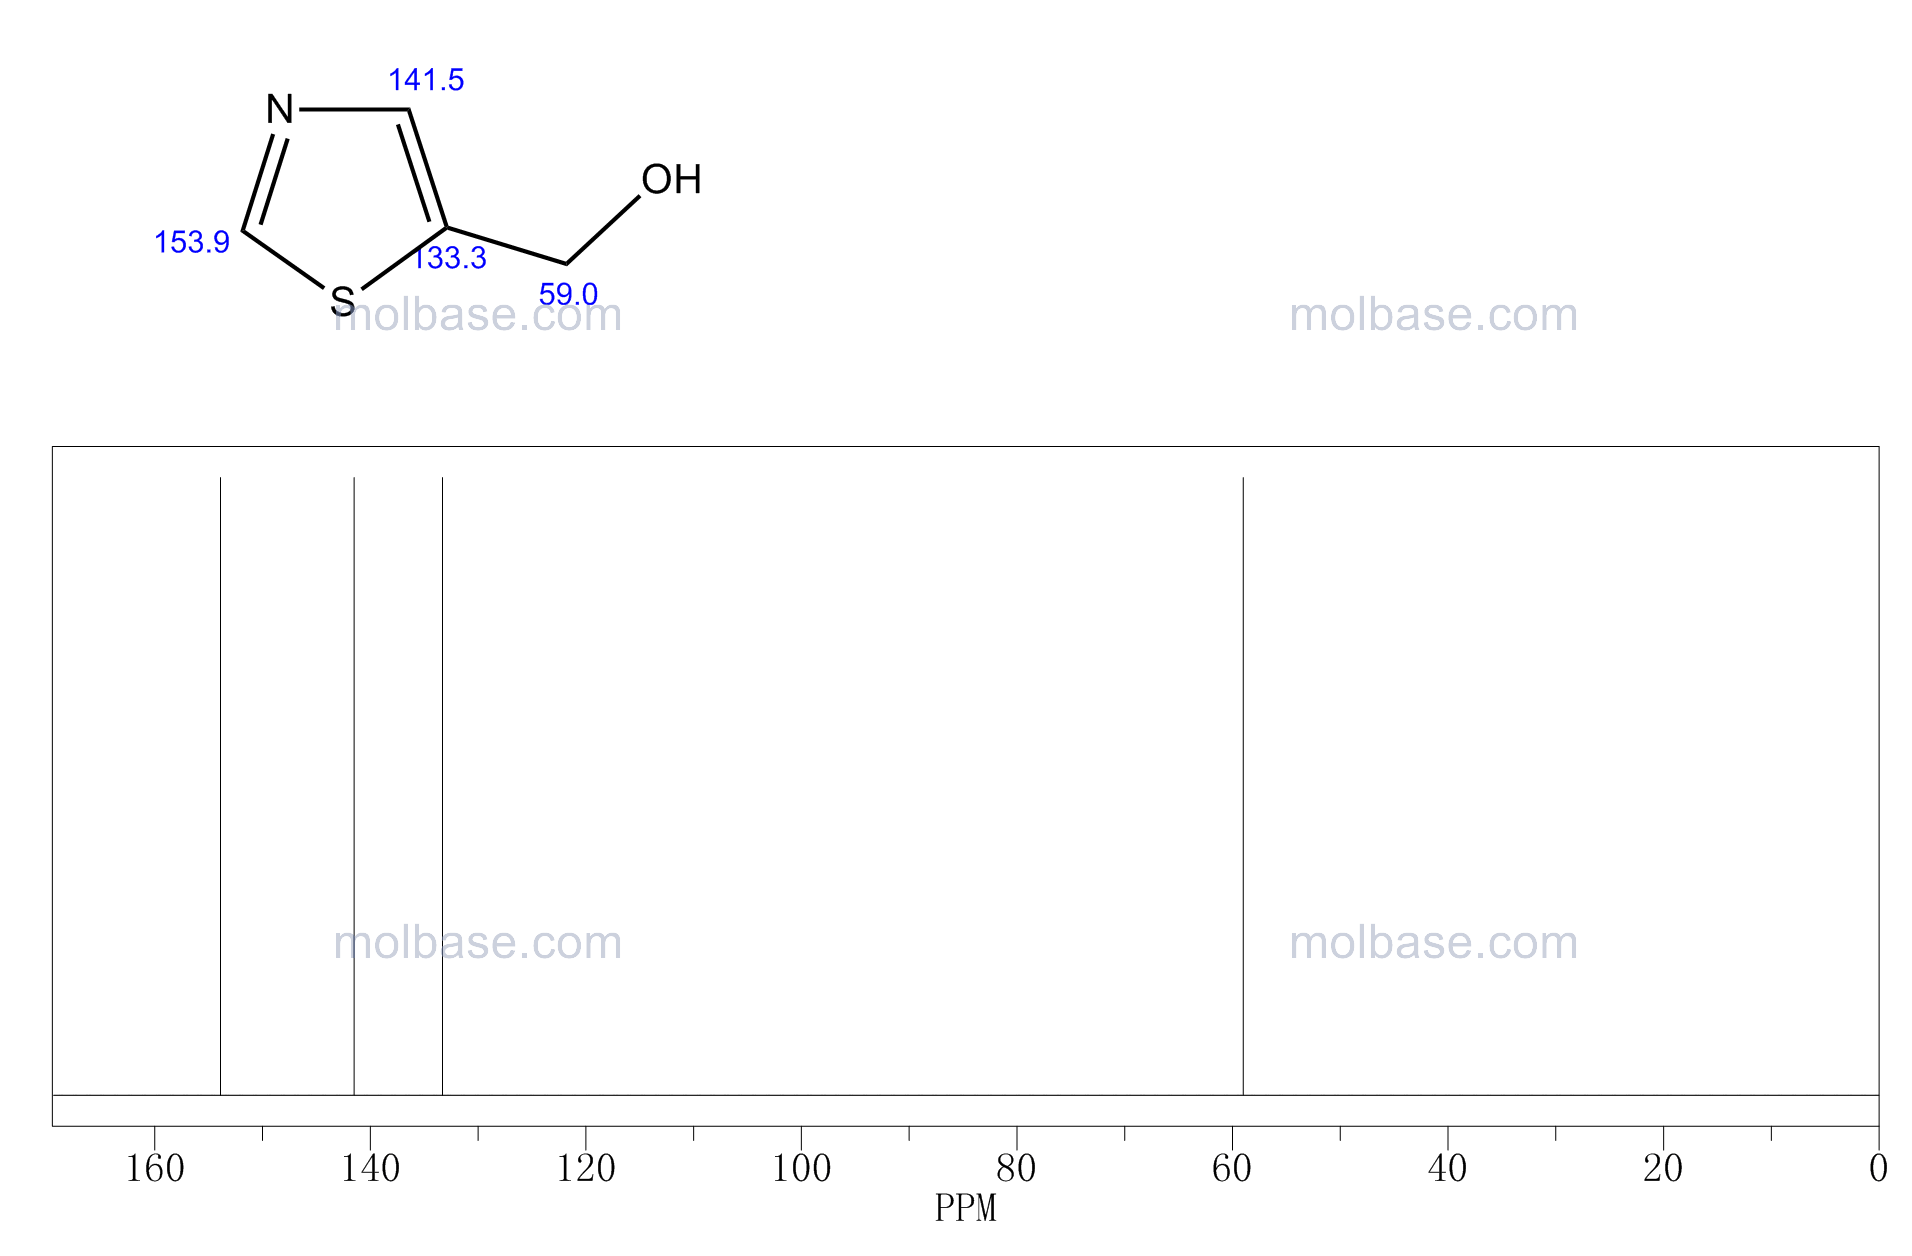 5-(Hydroxymethyl)thiazole NMR spectra analysis, Chemical CAS NO. 38585-74-9 NMR spectral analysis, 5-(Hydroxymethyl)thiazole C-NMR spectrum